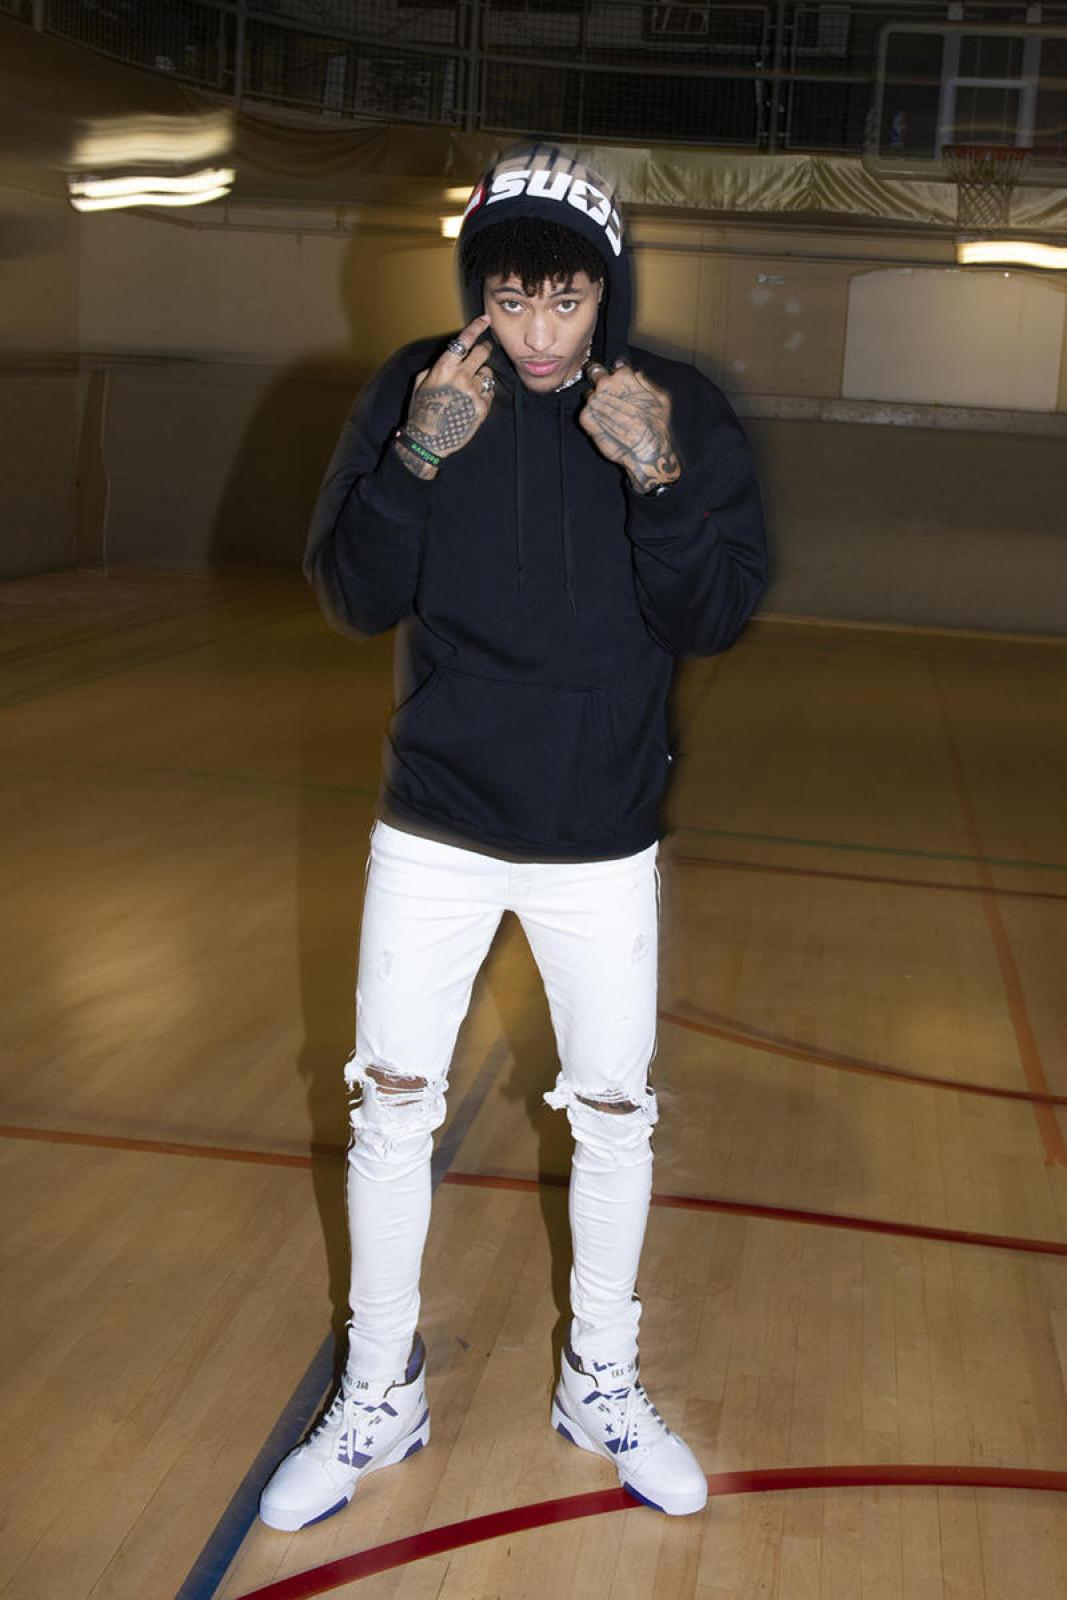 The style guides will tell you to make room for looser fitting pants and denim in your wardrobe. The NBA player on the other hand will show you that ripped skinny jeans and basic hoodies are still the move.